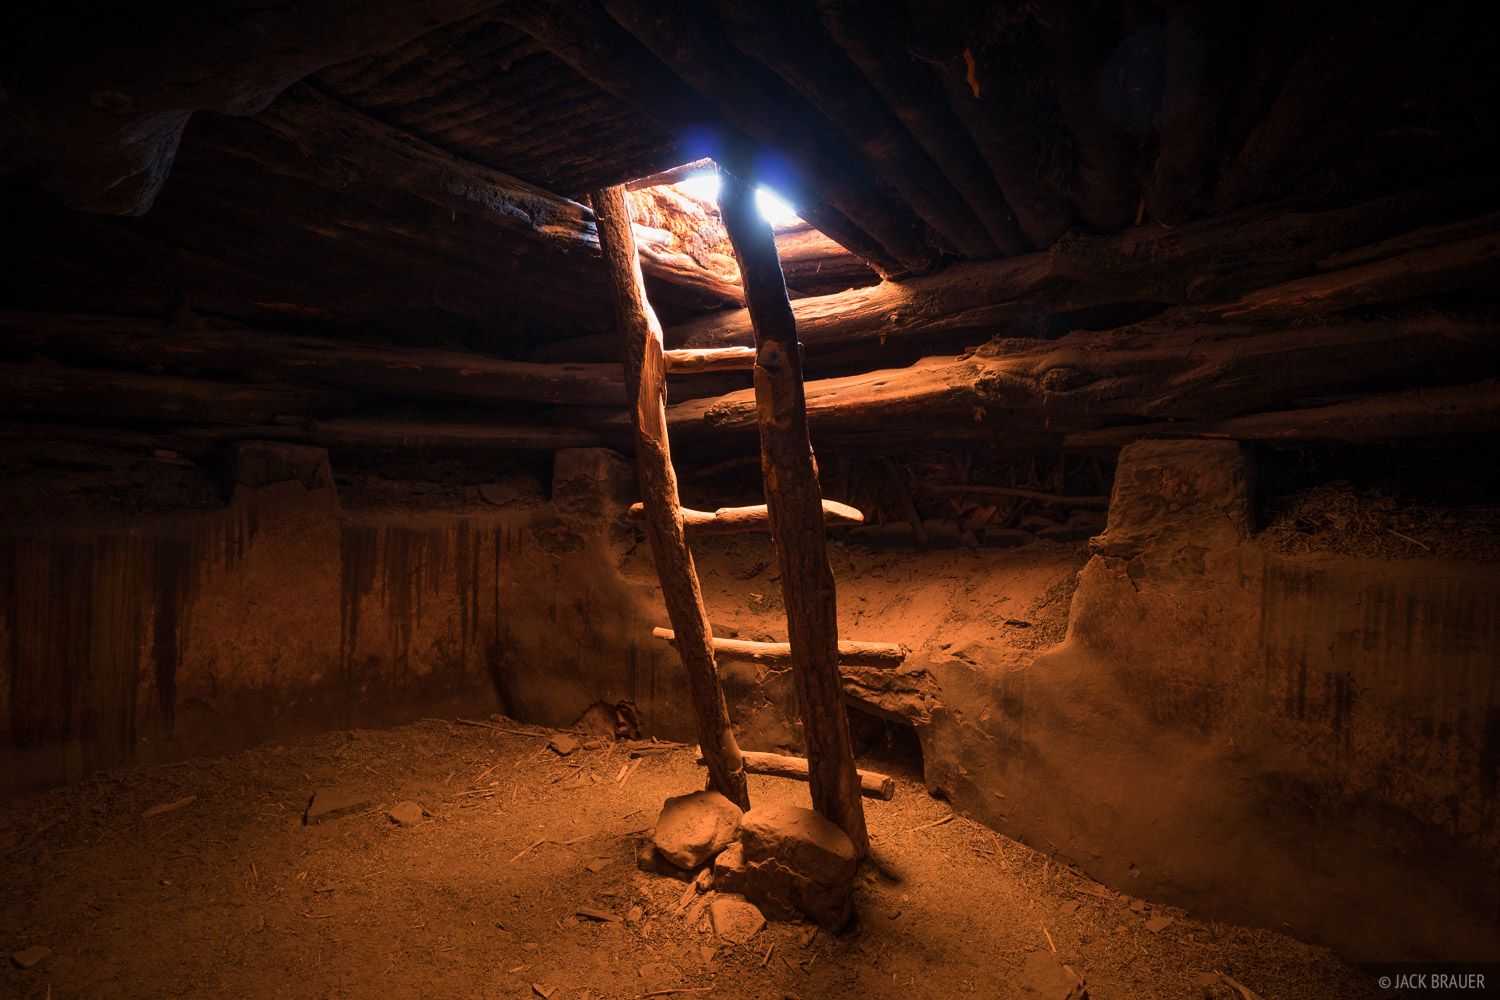 This Ancestral Puebloan kiva was discovered intact in the 1890s, but by the 1970s the roof was starting to collapse. Restoration...